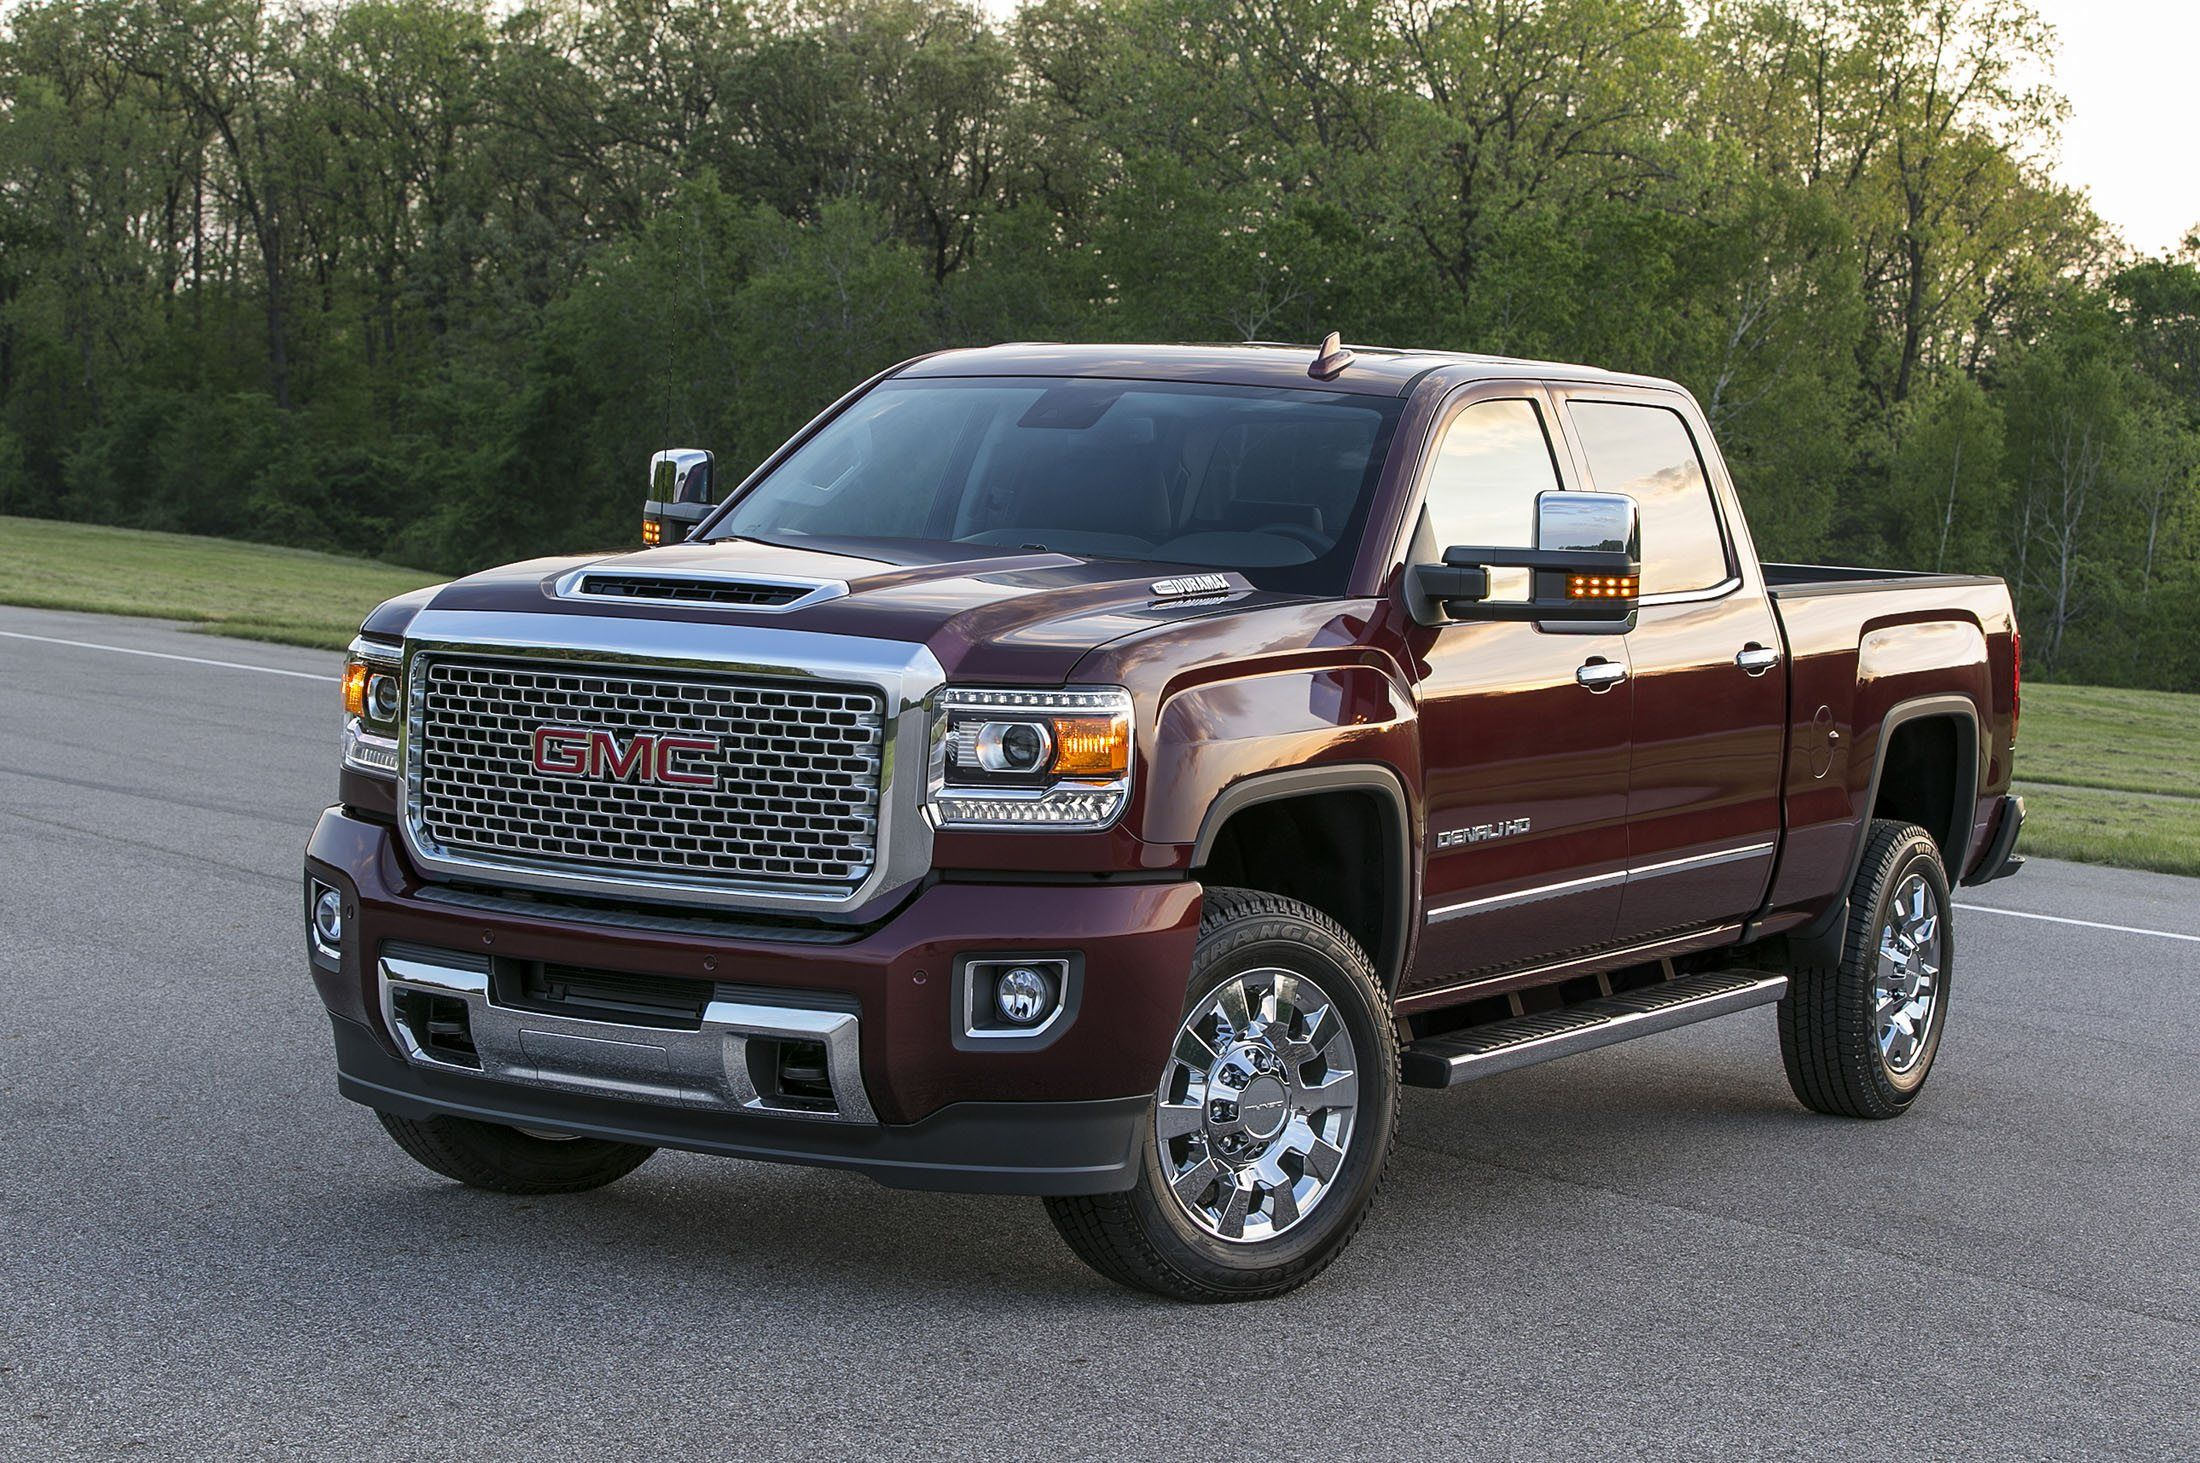 2020 Gmc Canyon Denali Concept And Review In 2020 Gmc Sierra Denali Gmc Sierra Gmc Sierra 2500hd